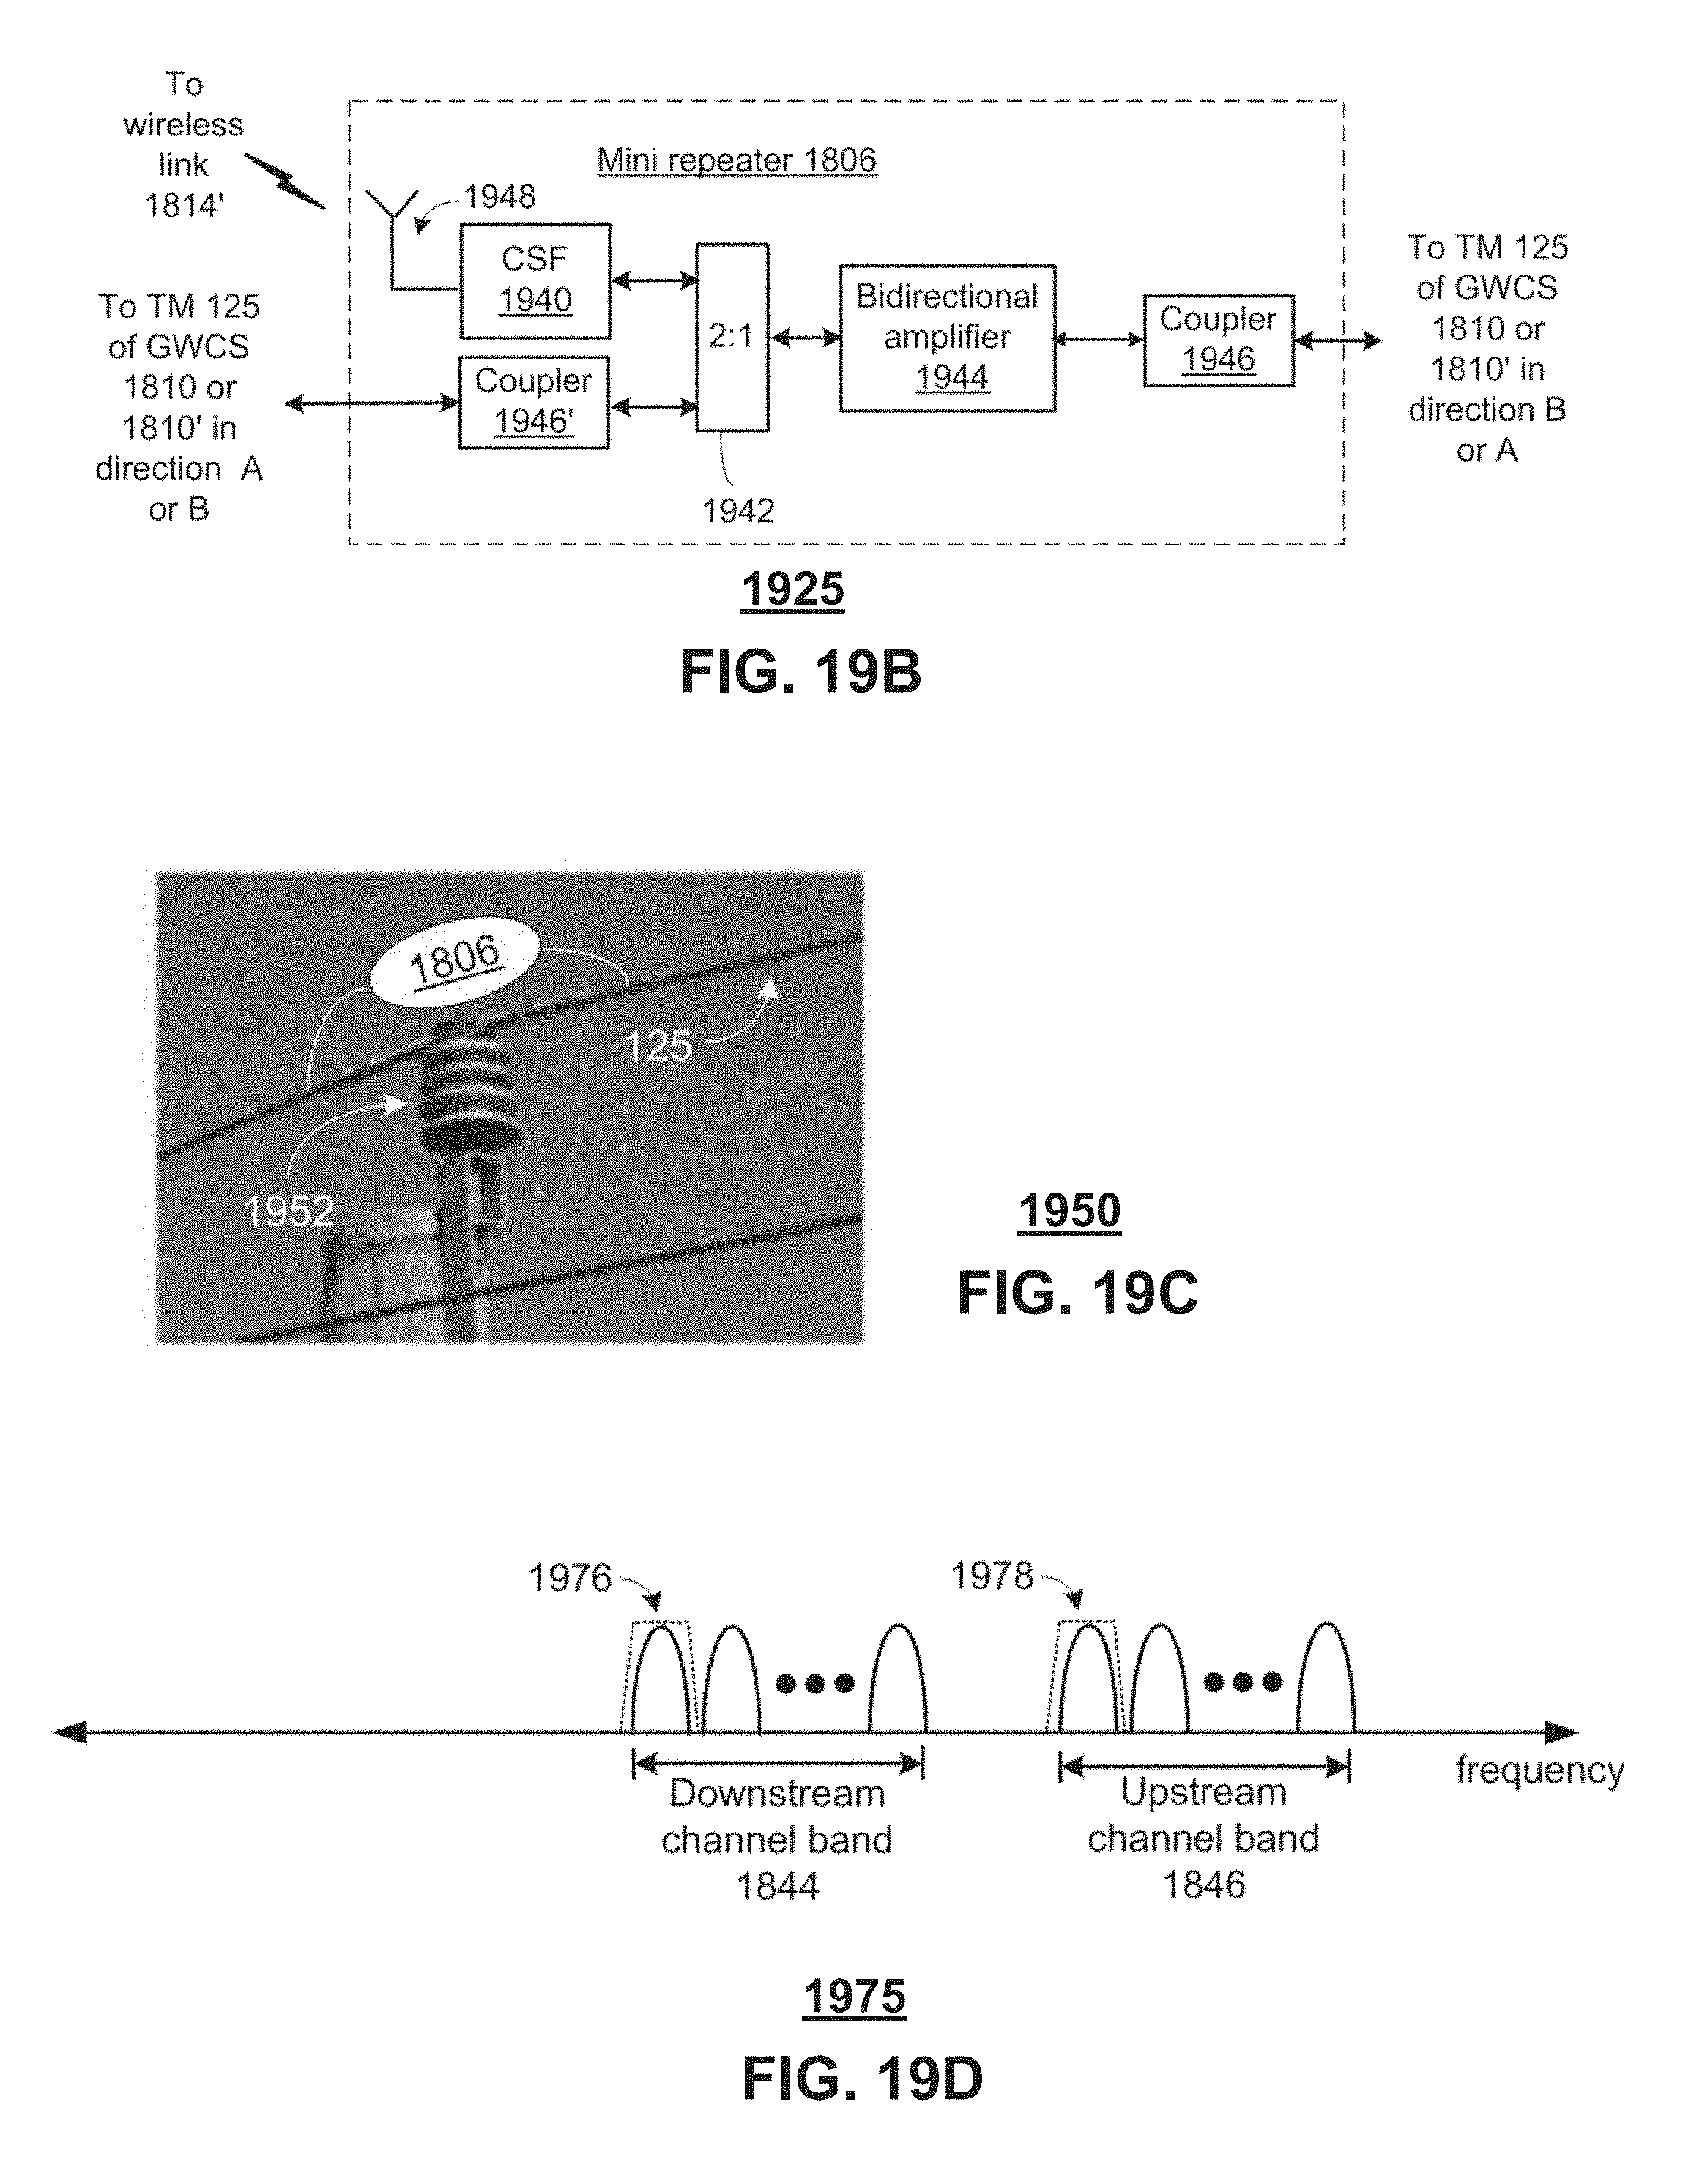 Led Lighting Fixture Google Patents On Wiring Niles Ir Repeater Diagram Collection Sample